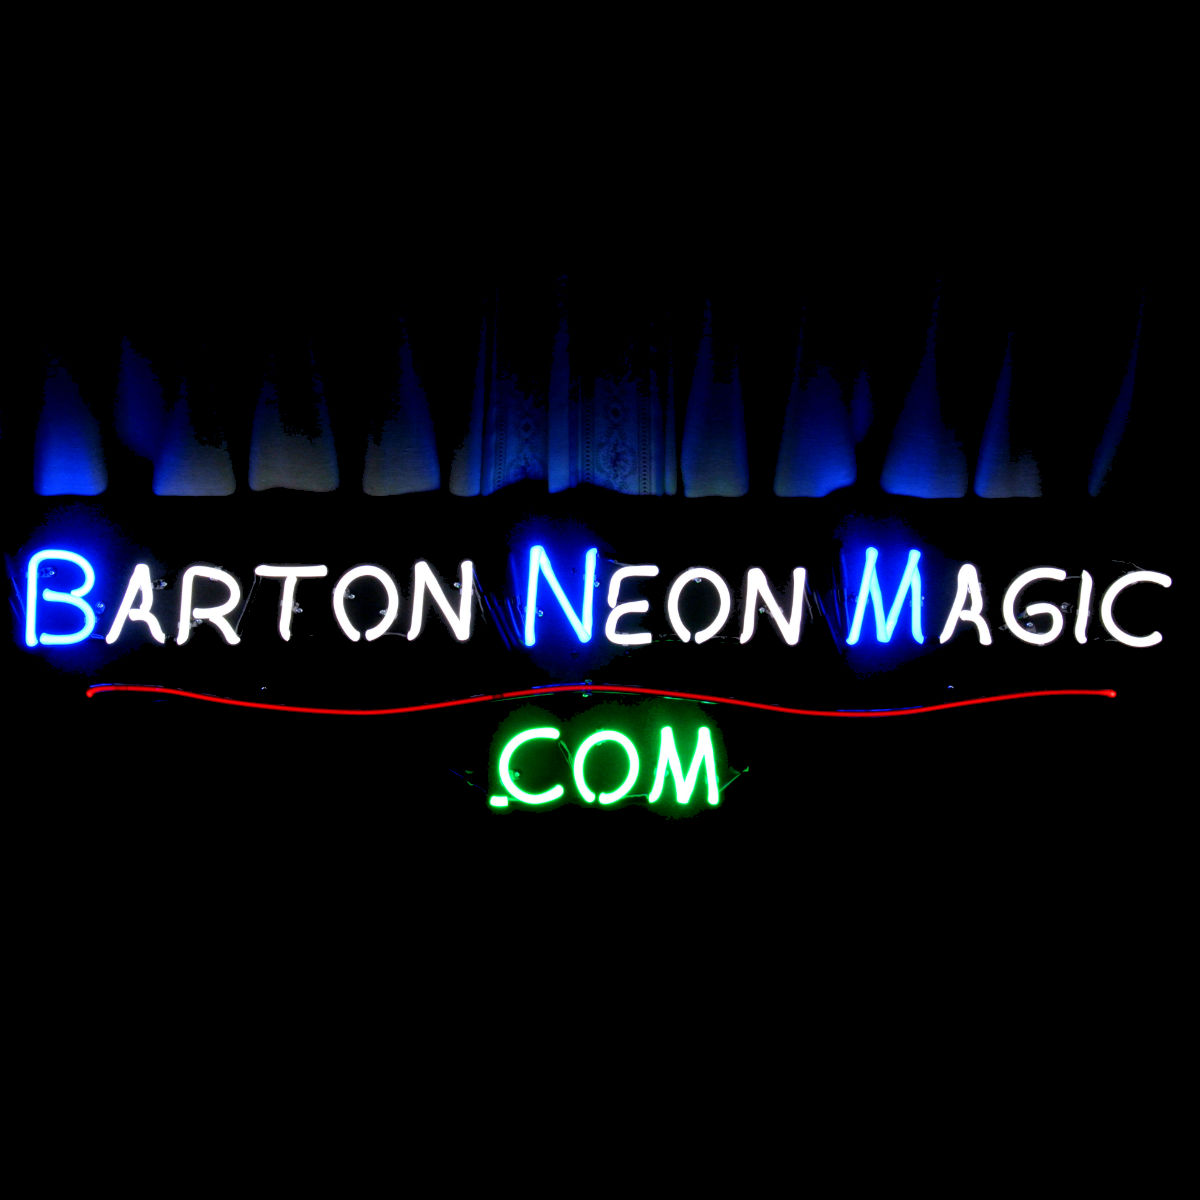 Hand-blown Designer Neon Light Fixtures by John Barton - BartonNeonMagic.com